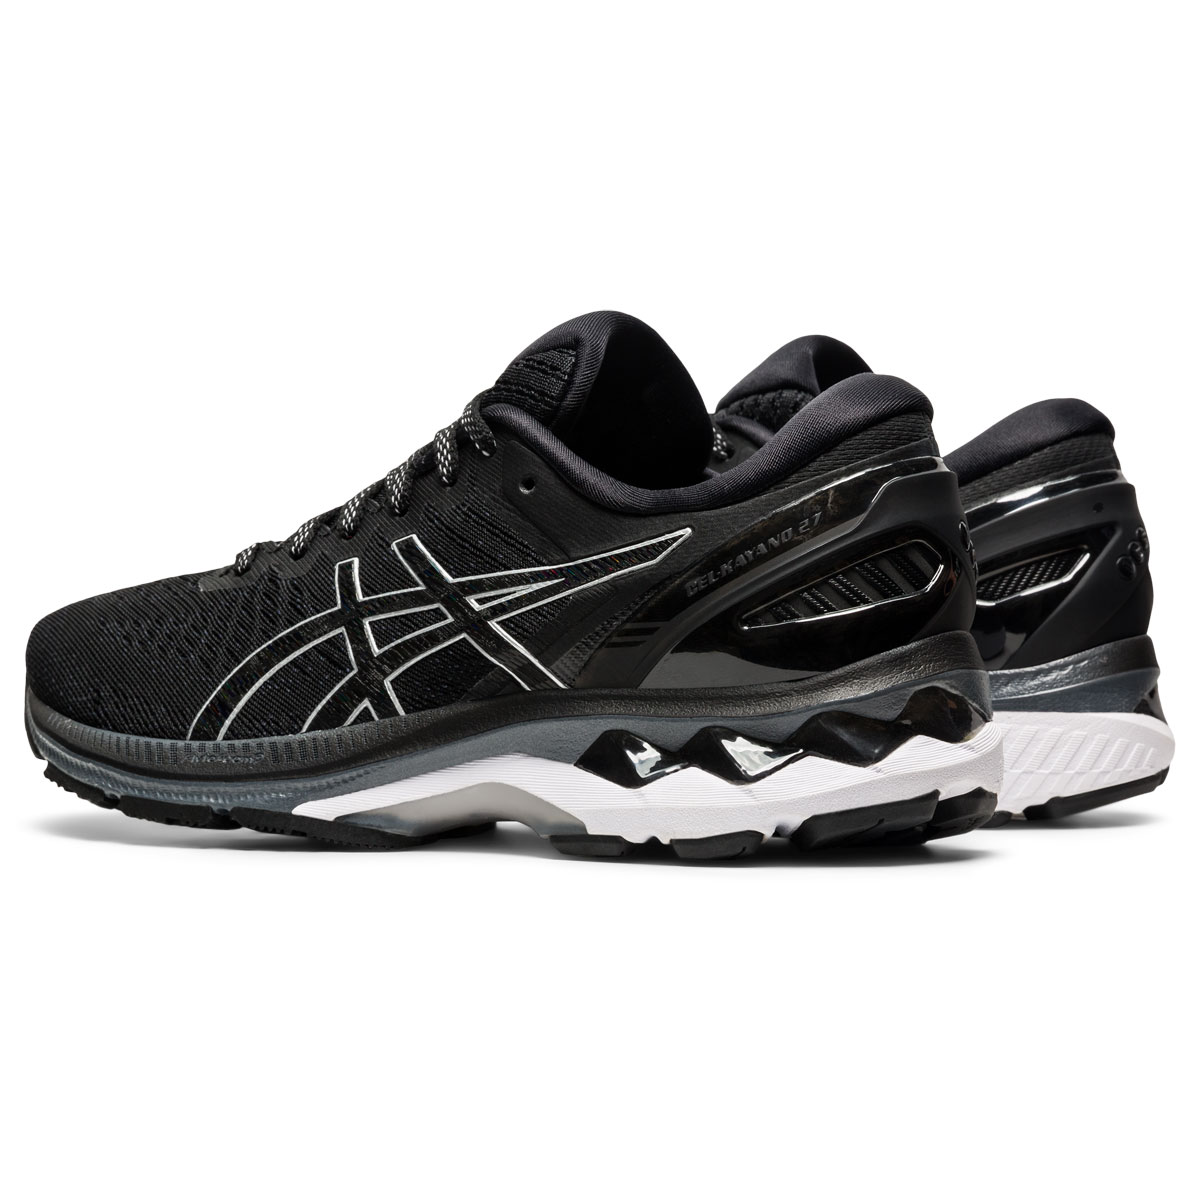 Women's Asics GEL-Kayano 27 Running Shoe, , large, image 4